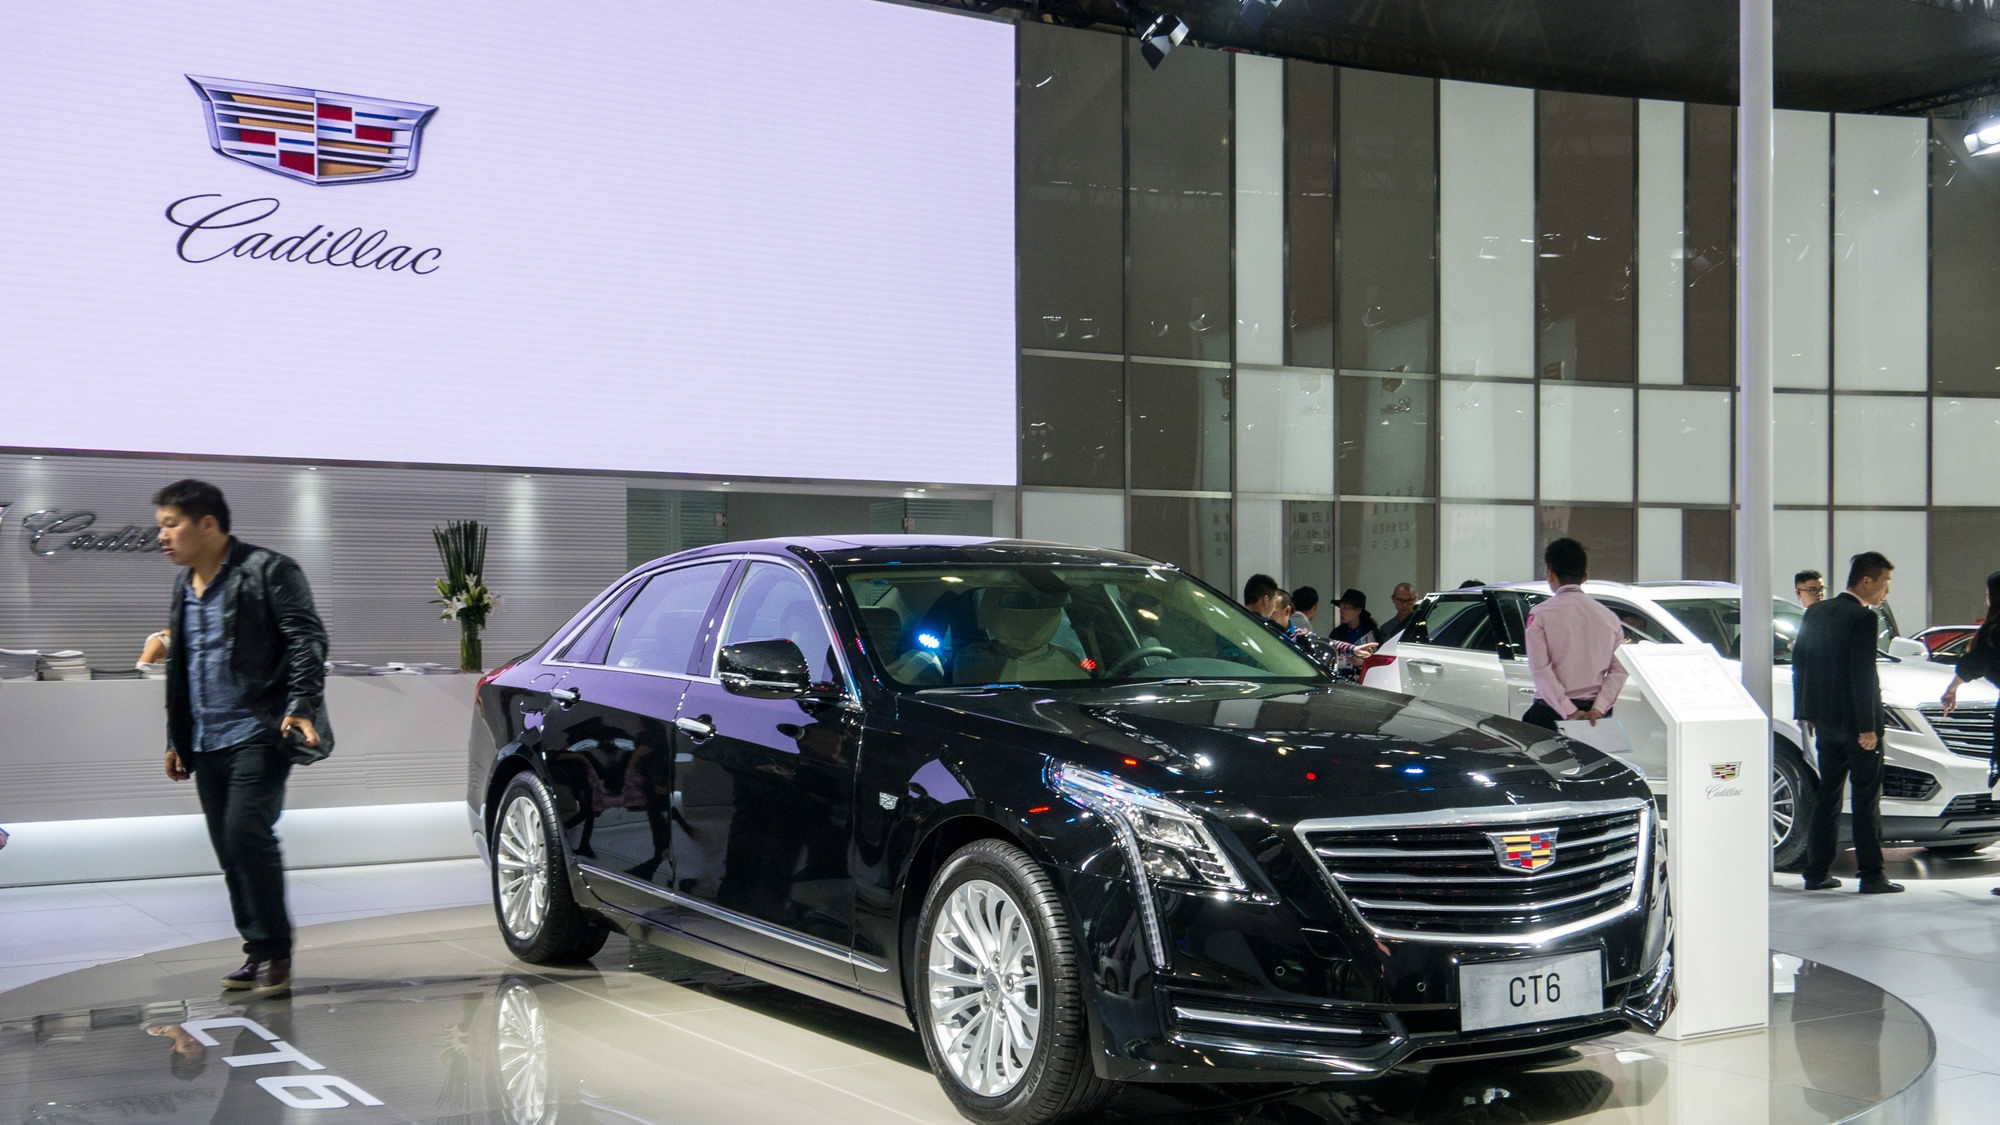 Cadillac keeps plan to sell Chinese-made cars in the US - CGTN